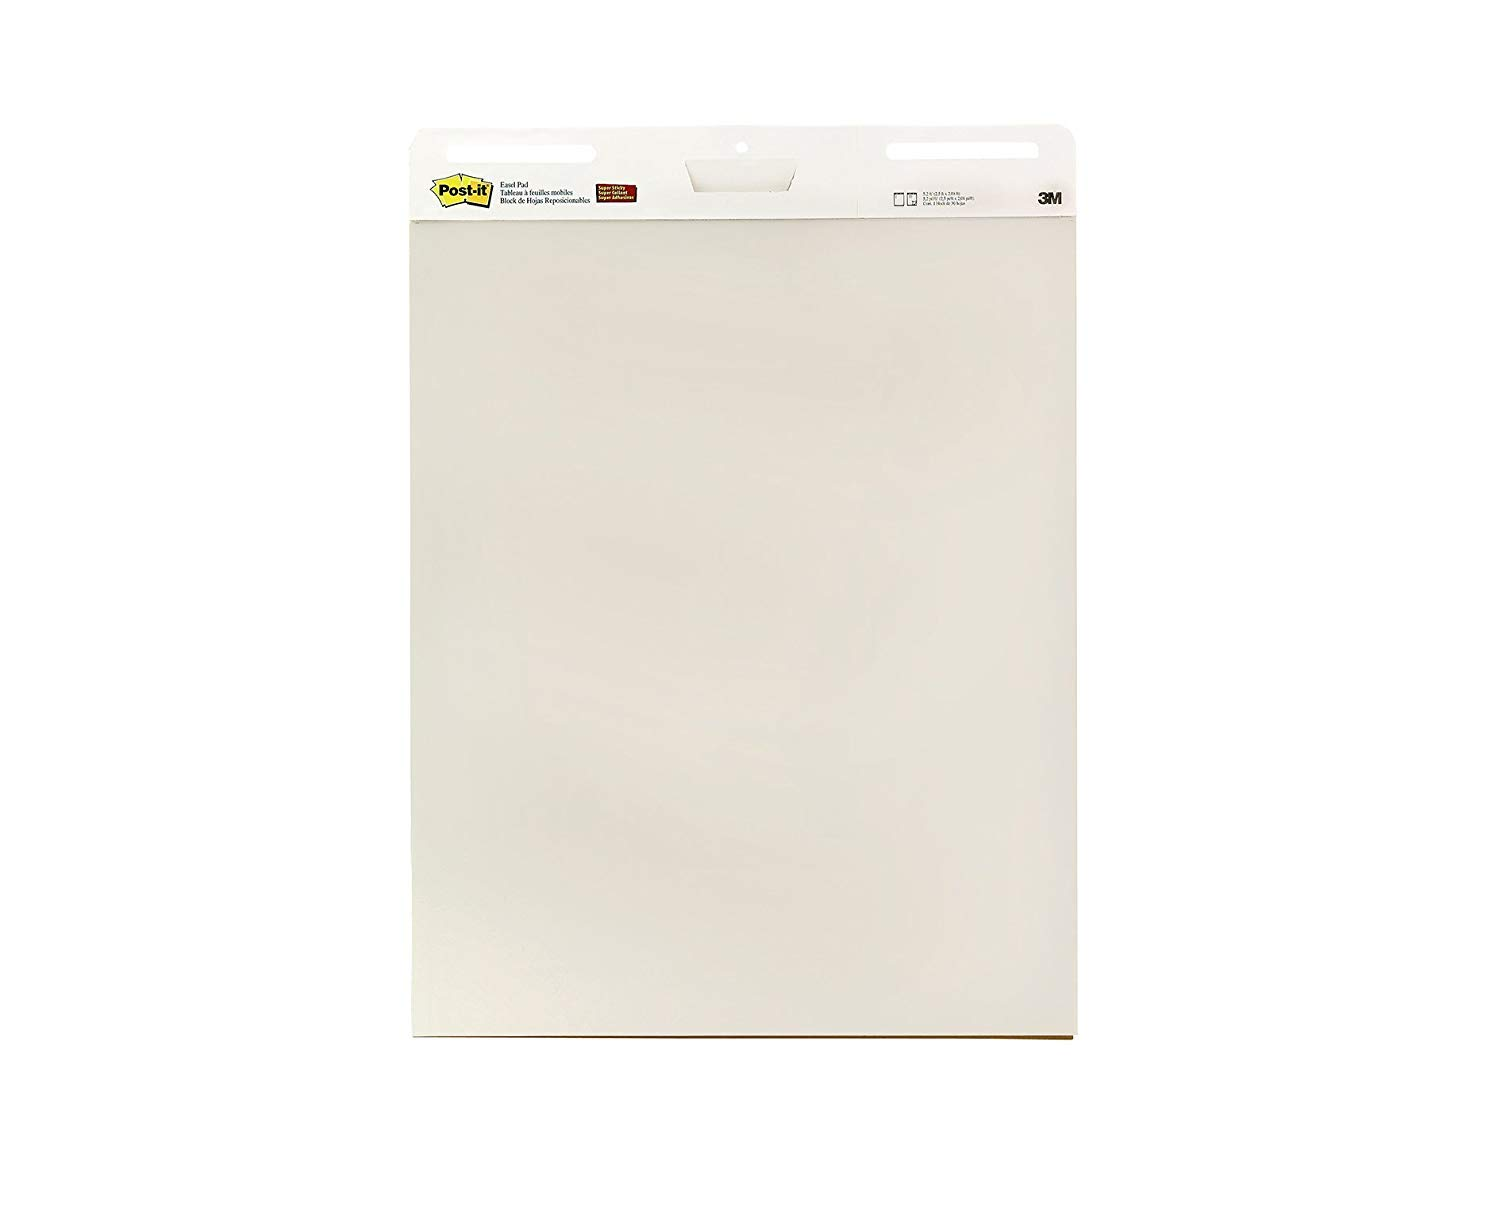 Post-it Super Sticky Easel Pad, 25 x 30 Inches, 30 Sheets/Pad, 2 Pads, Large White Premium Self Stick Flip Chart Paper, Super Sticking Power (559) (Limited Edition)